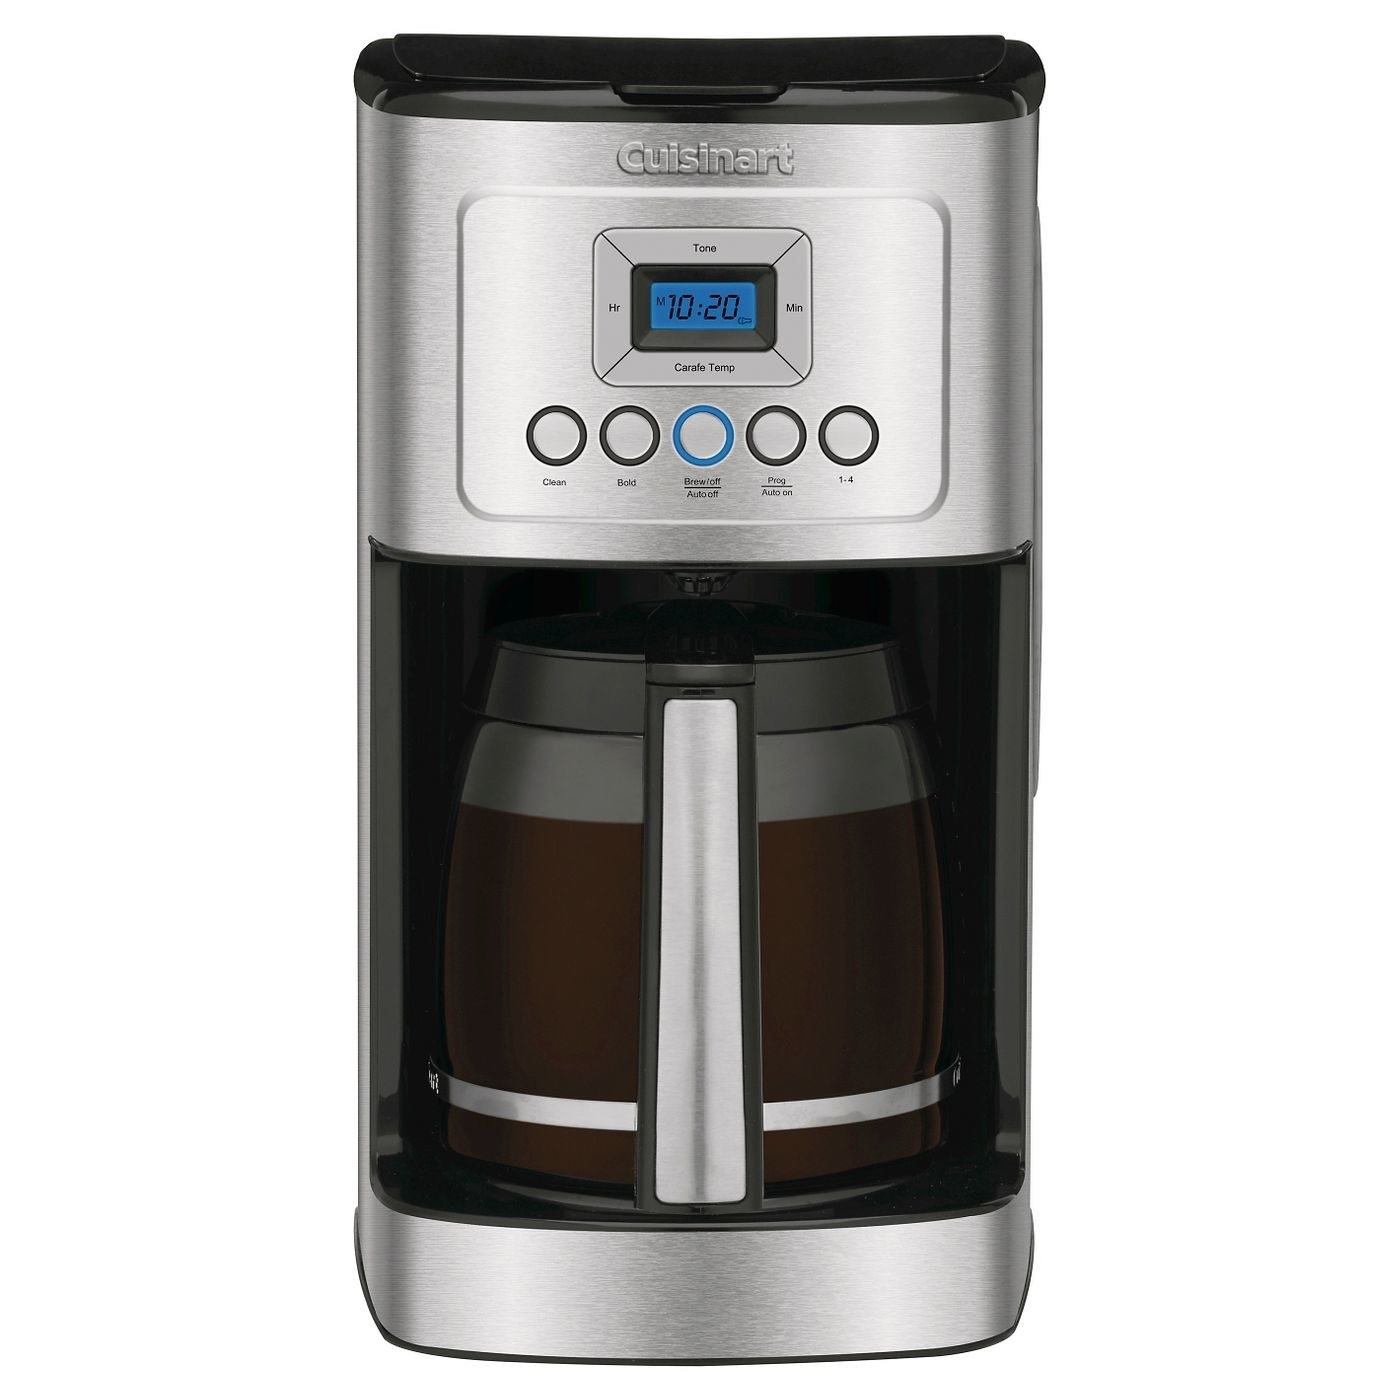 The silver coffeemaker